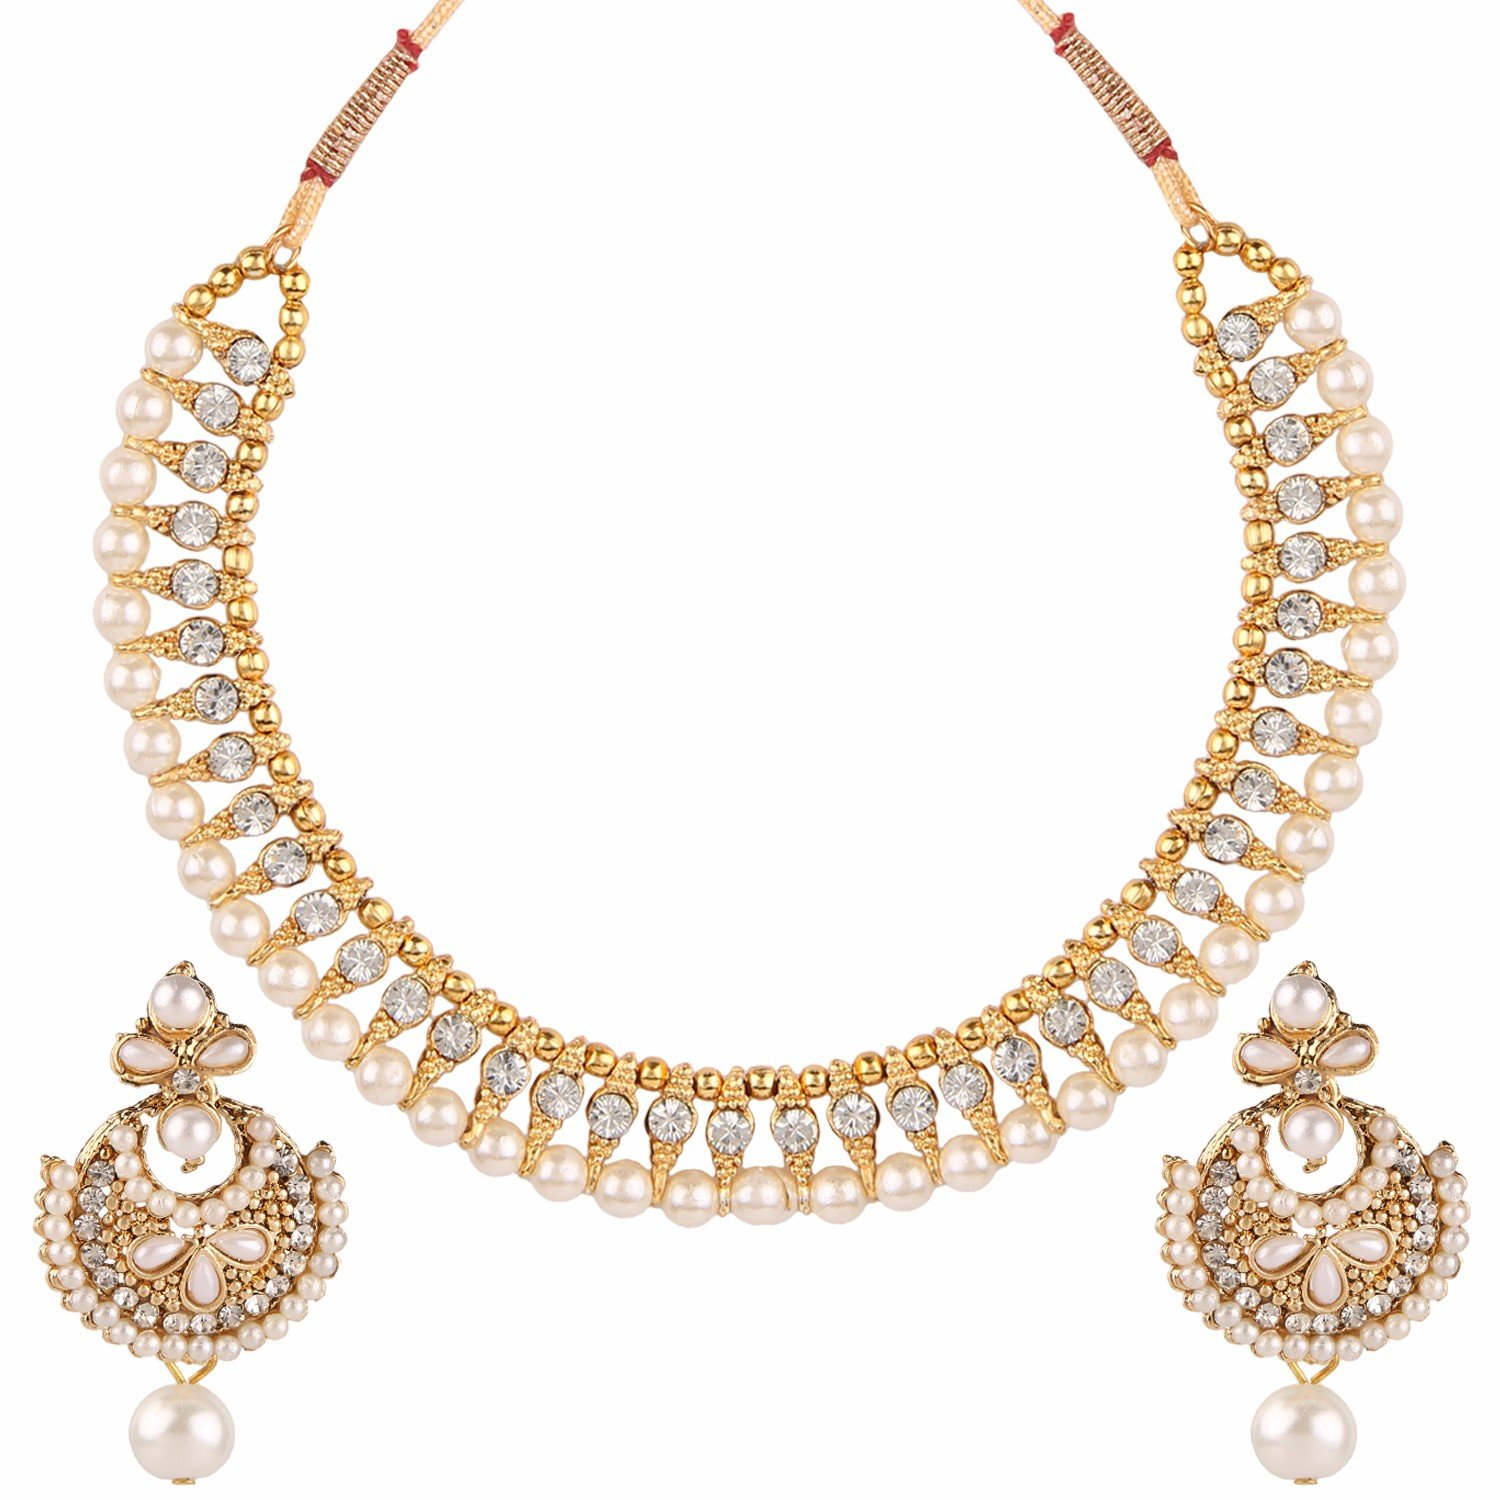 Efulgenz Handcrafted Simulated Pearl Beaded Classic Round Chunky Collar Strand Necklace Set Costume Fashion Accessories for Women and Girls